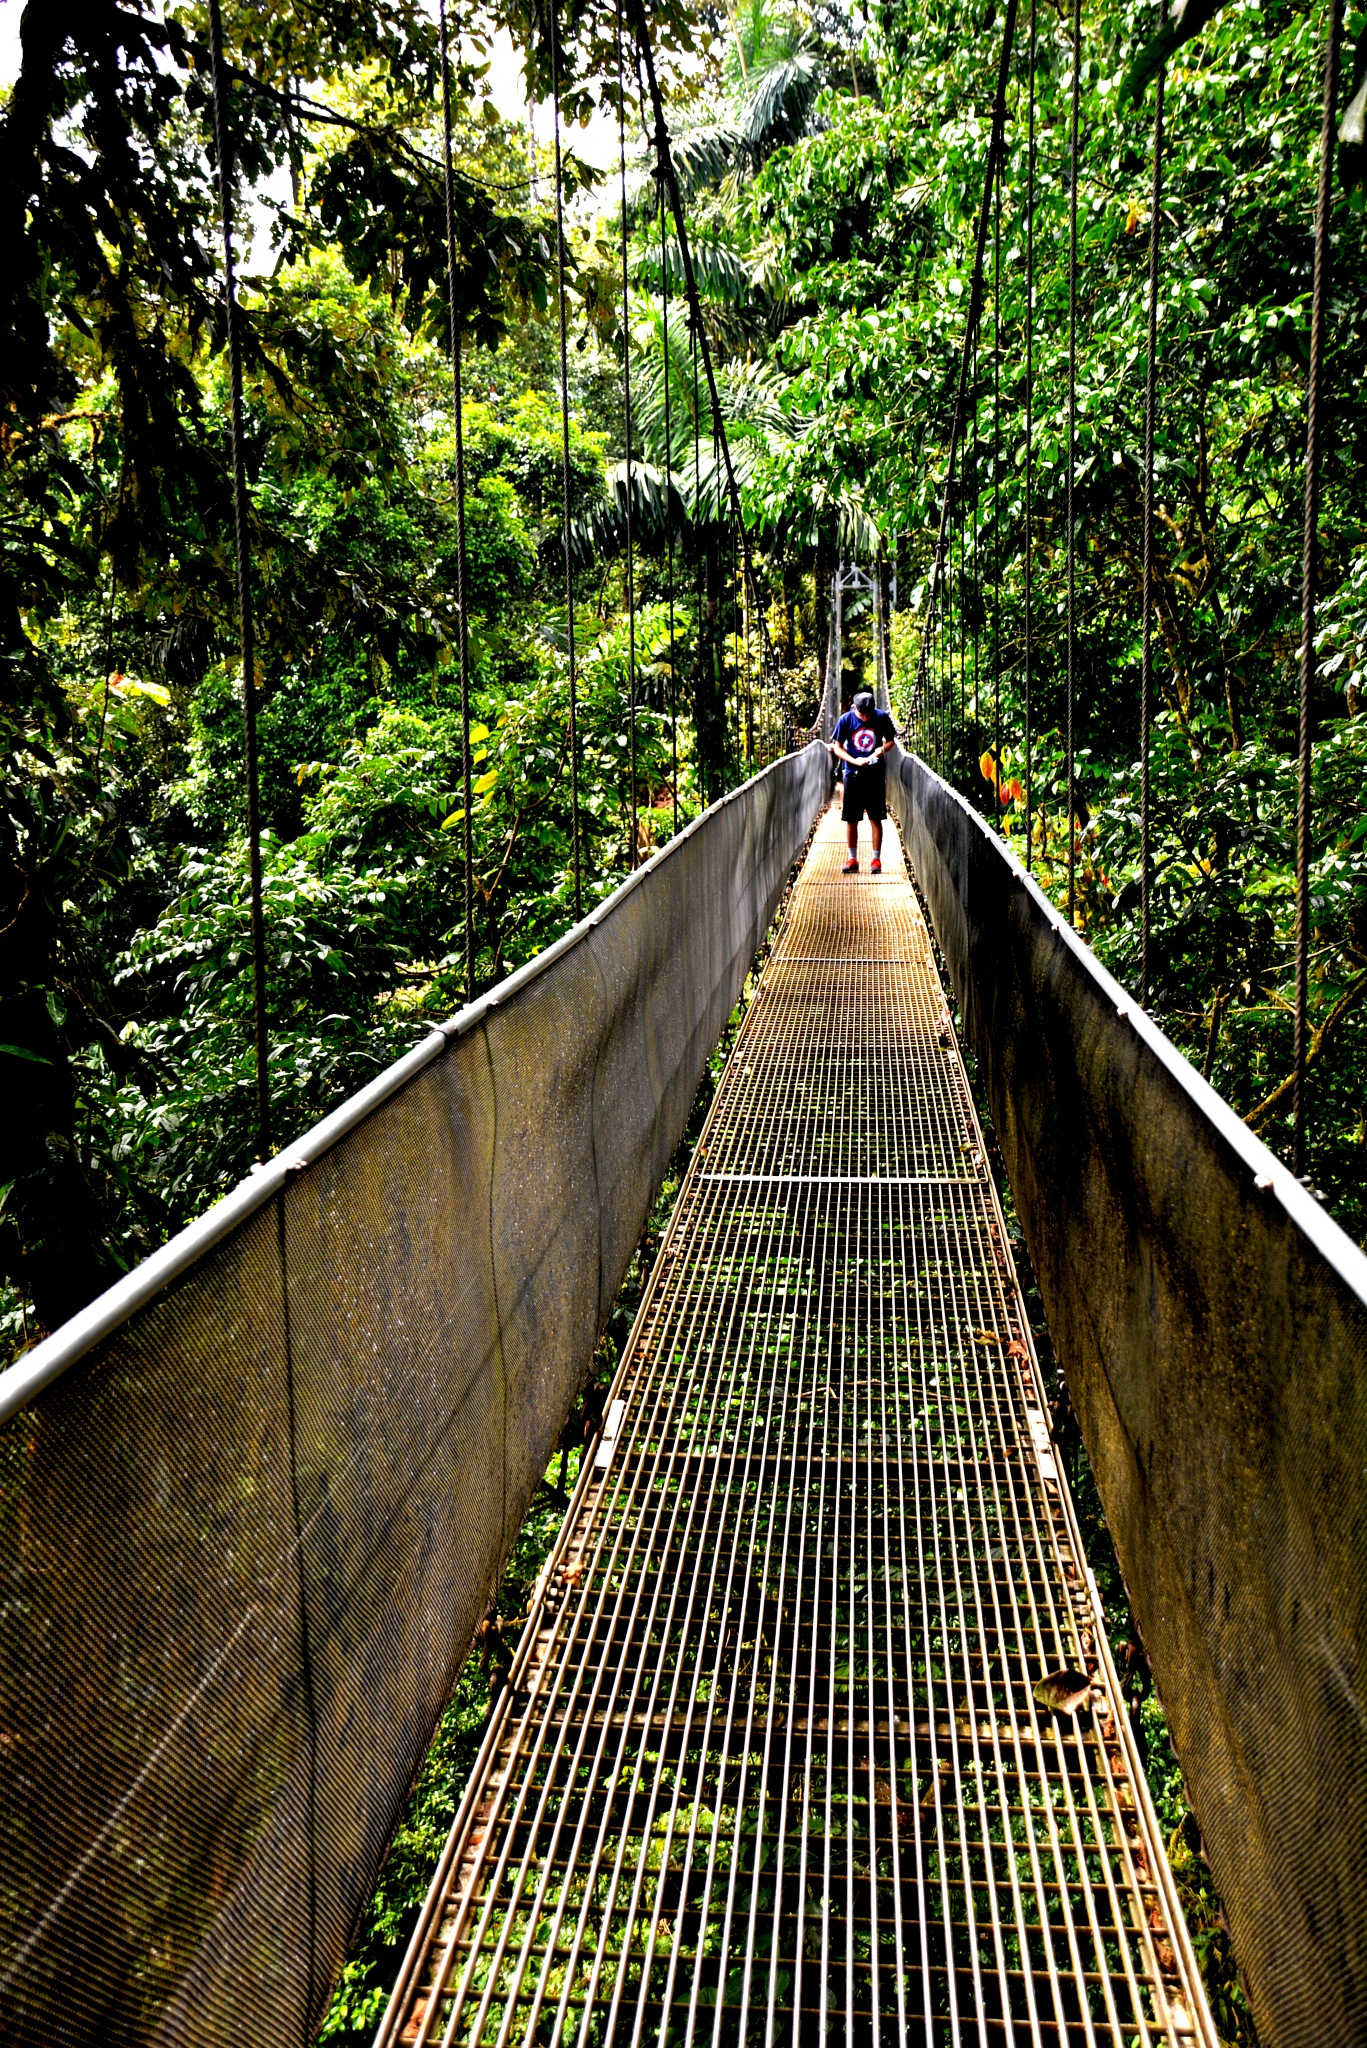 Hanging Bridge in Rainforest by HKS Images